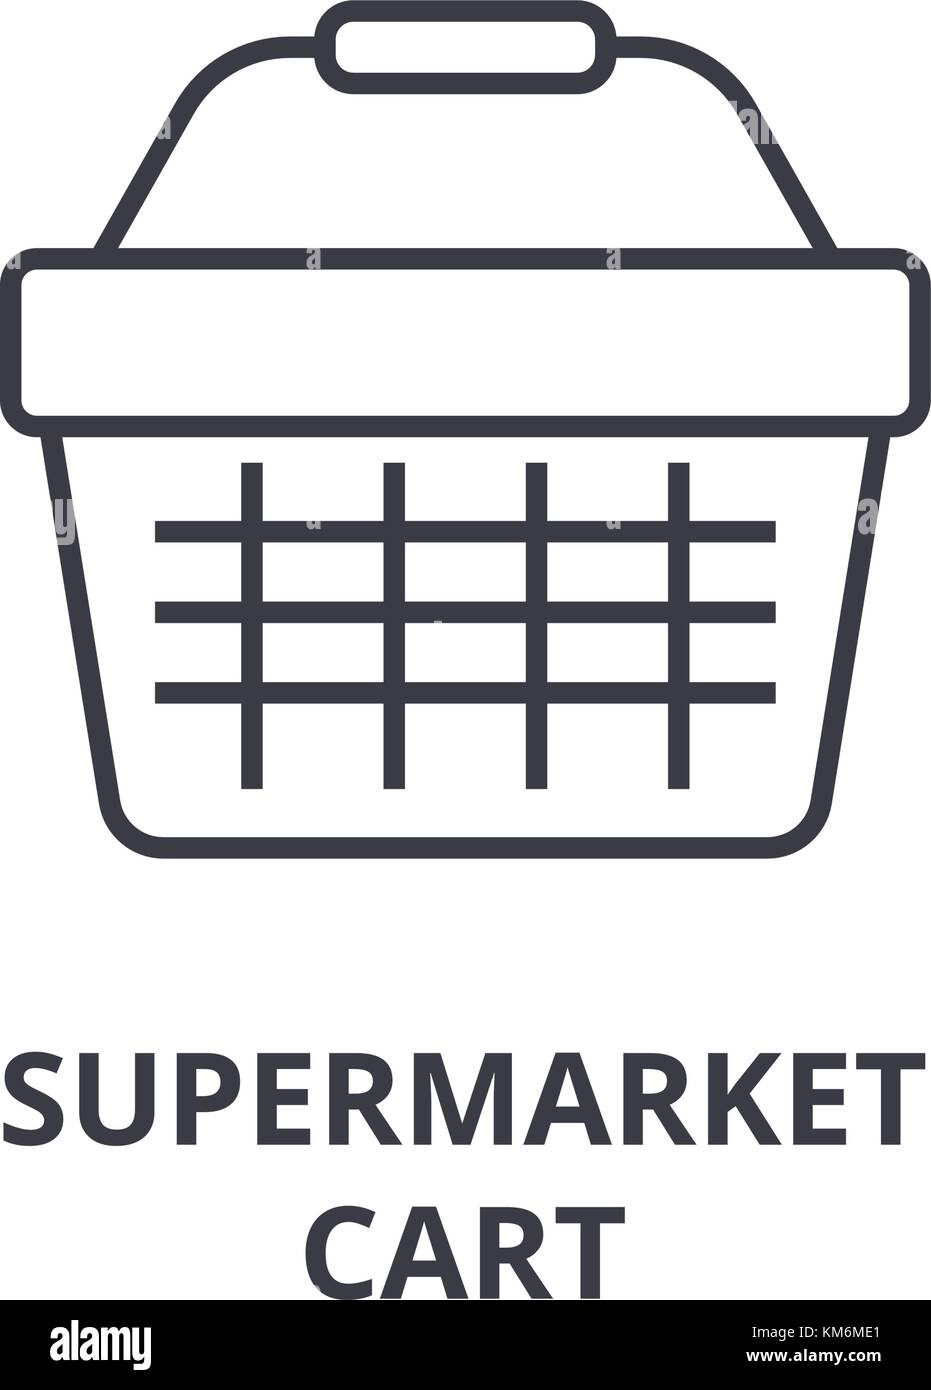 supermarket cart line icon, outline sign, linear symbol, vector, flat illustration - Stock Vector